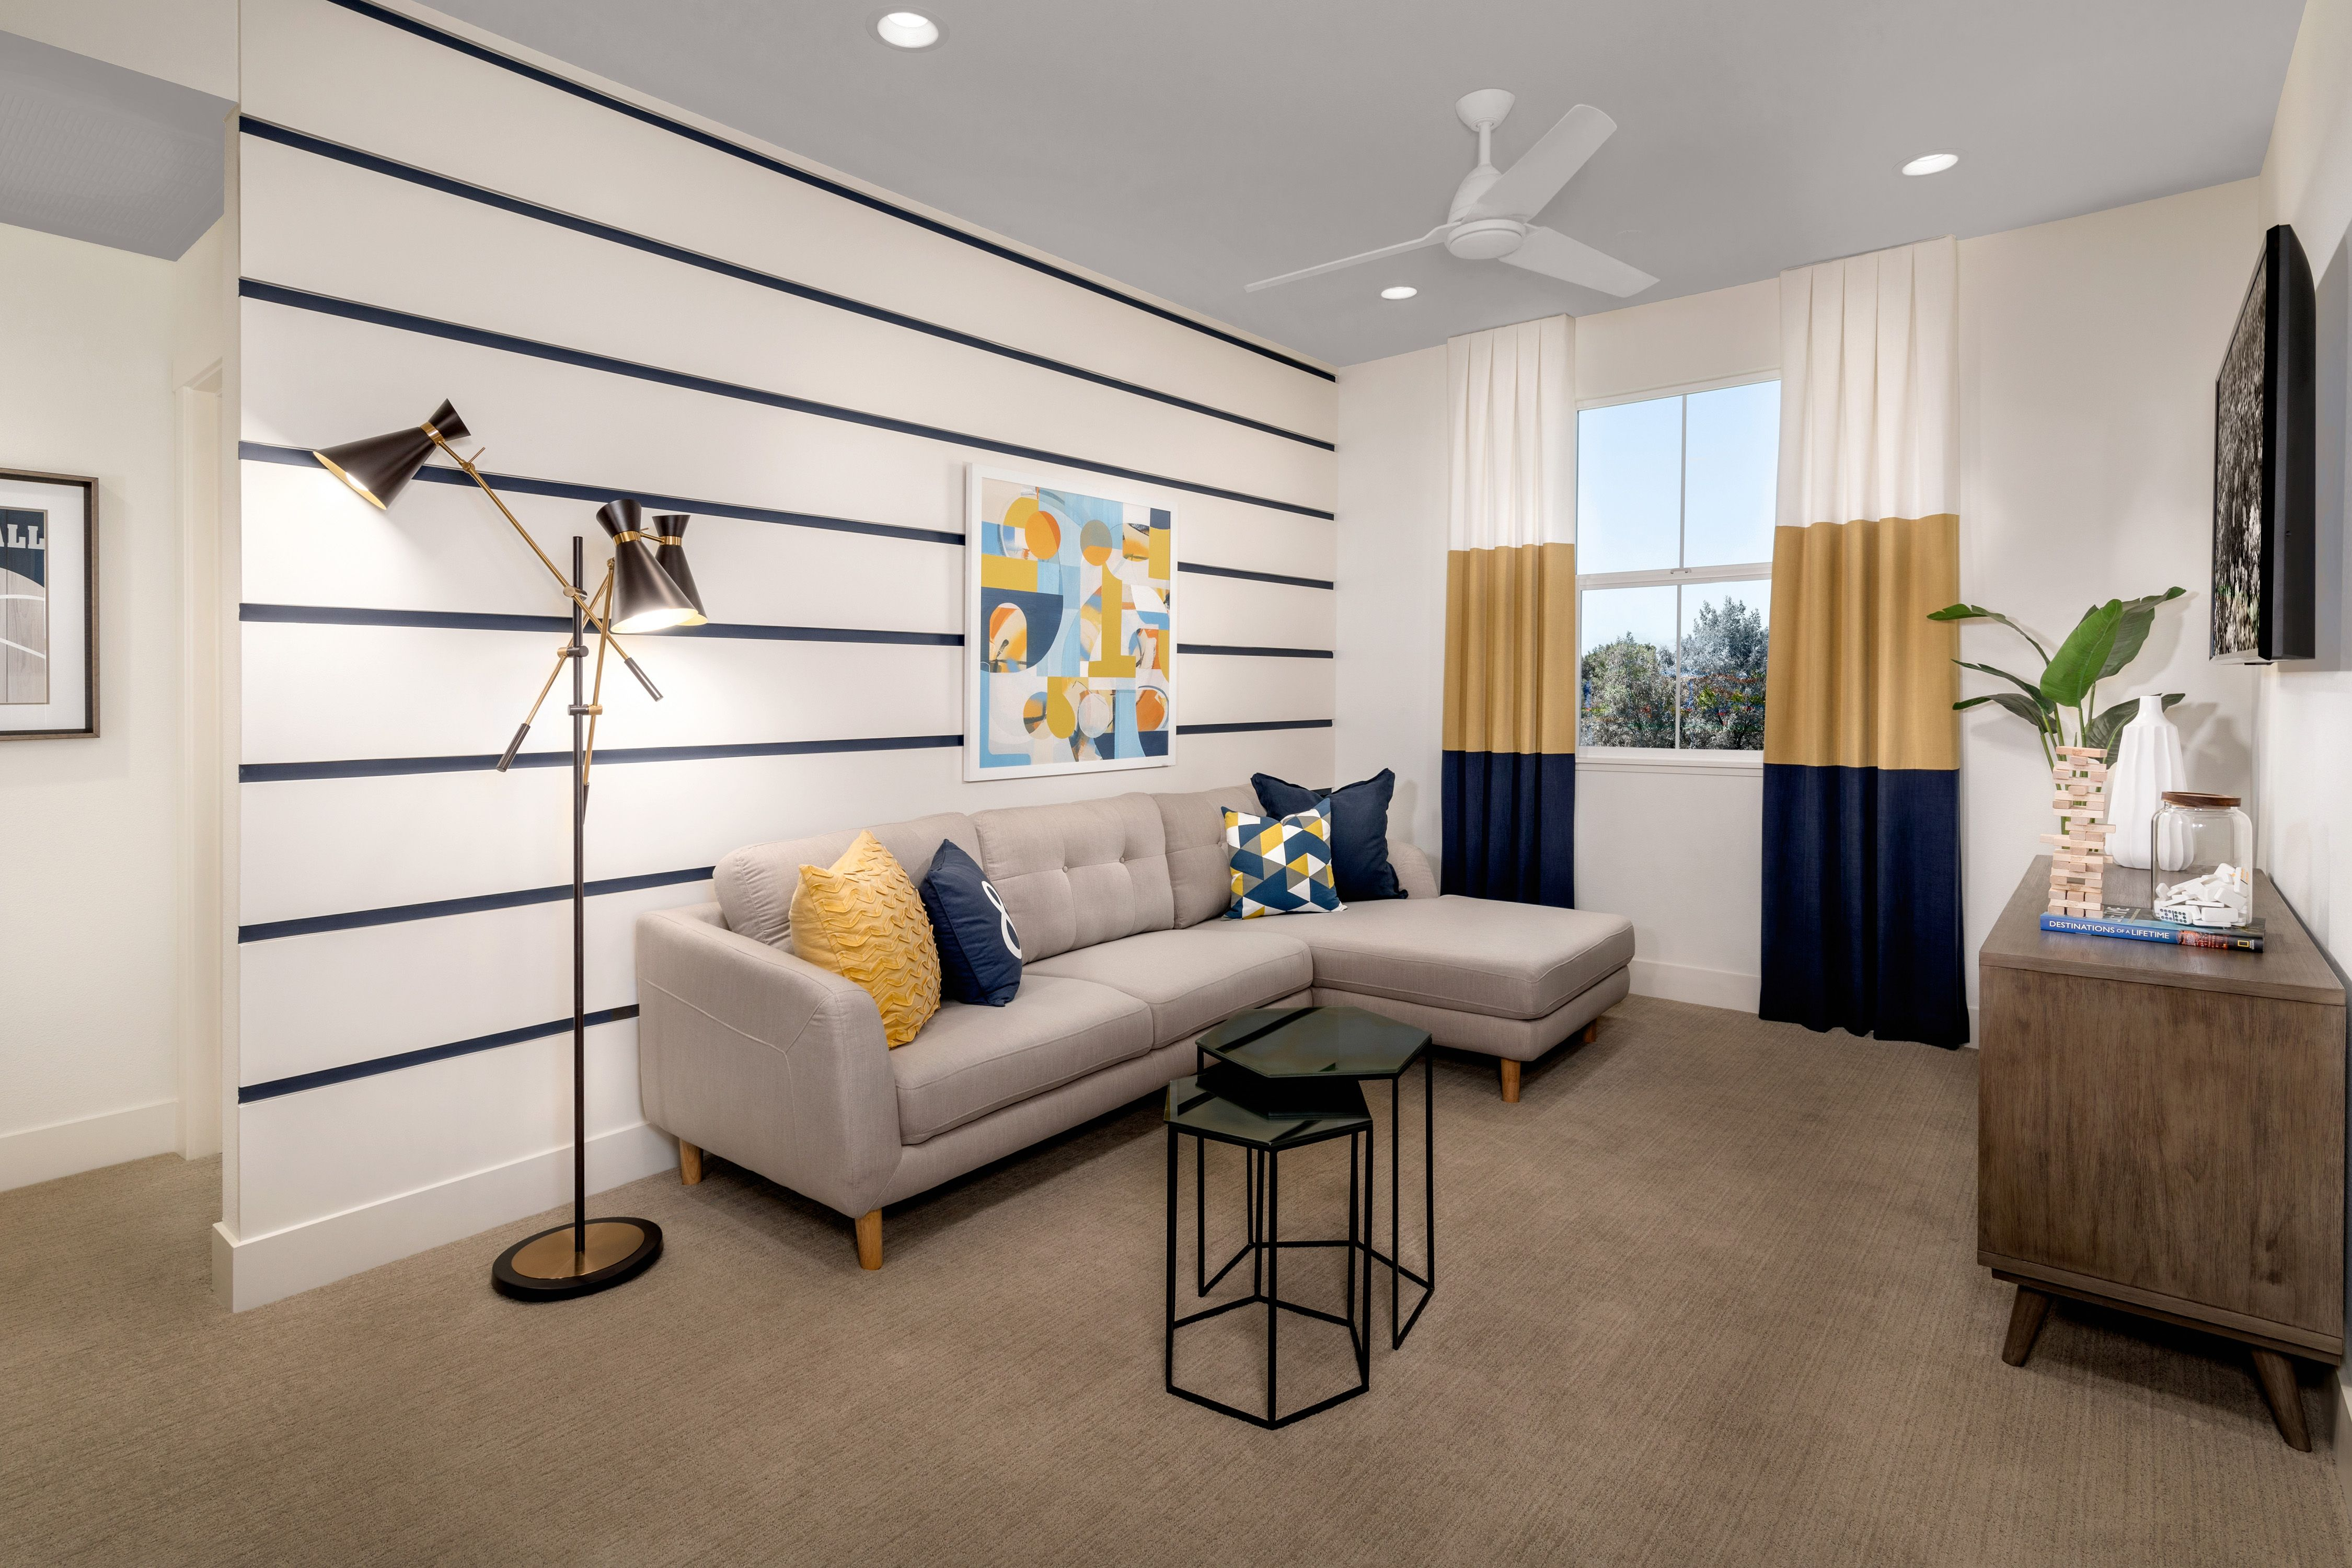 Living Area featured in the Mayfair Residence 2 By Kiper Homes in Santa Cruz, CA